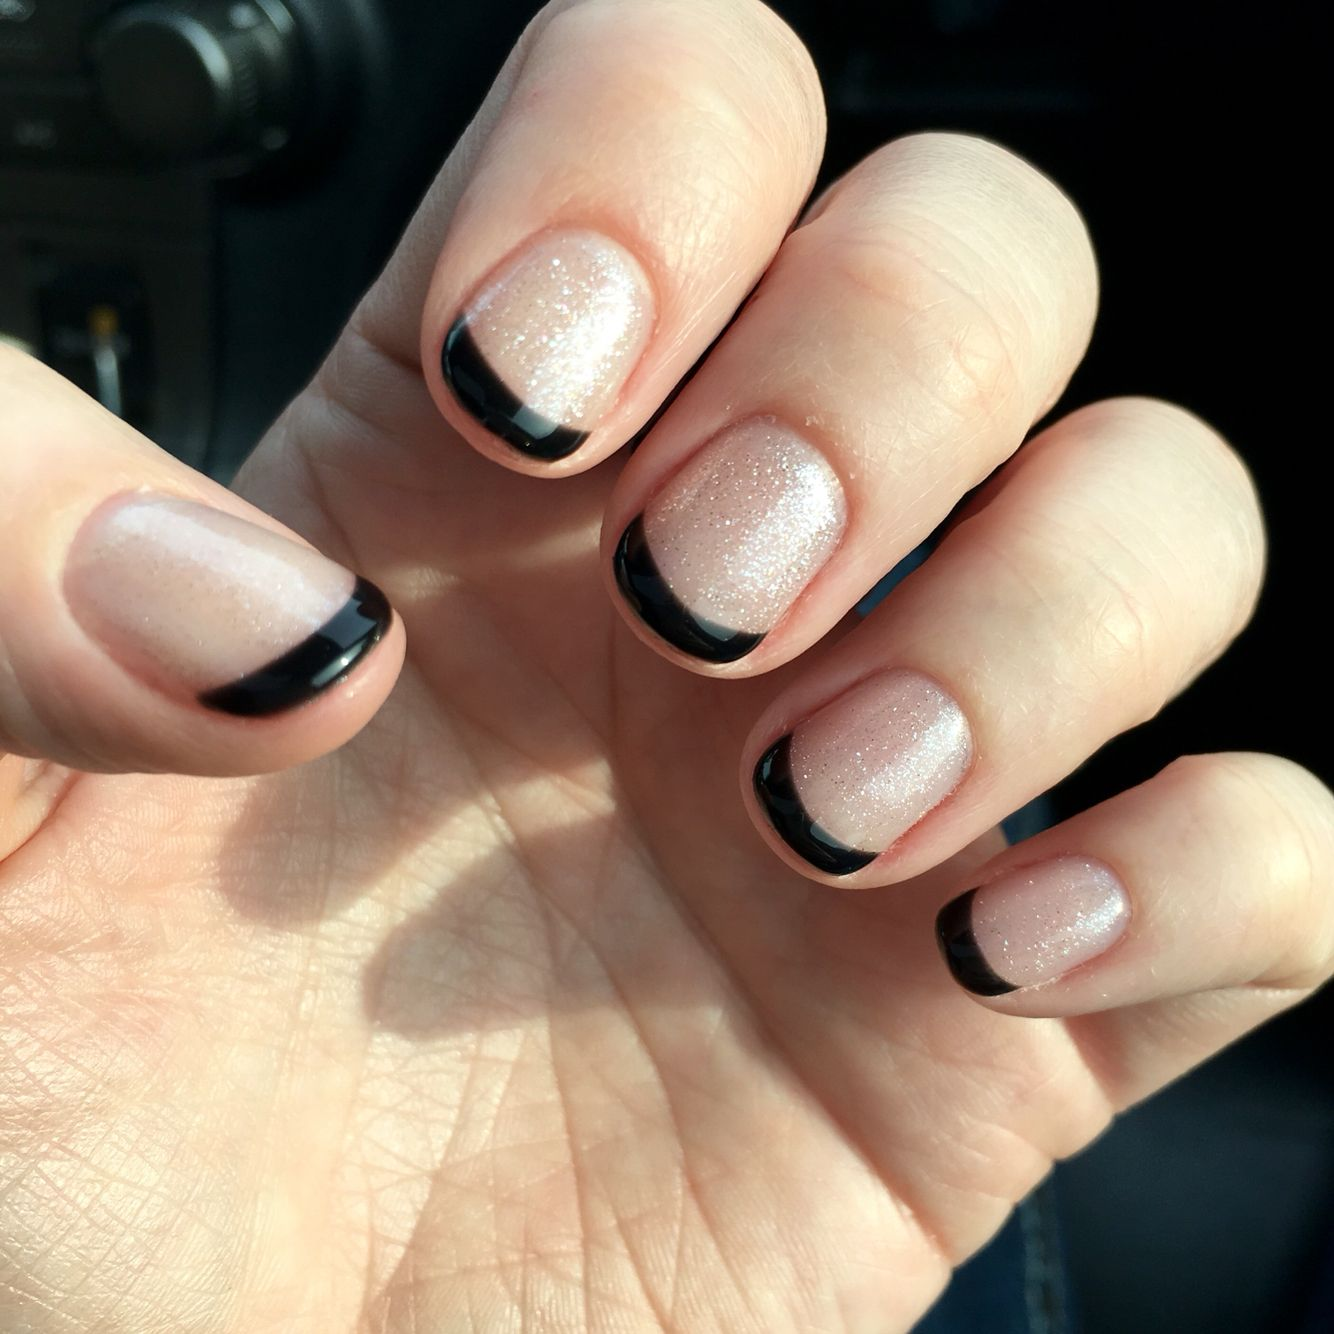 Black Tip French Manicure With Sparkles On Short Nails Orange Nail Designs Simple Nails Nails